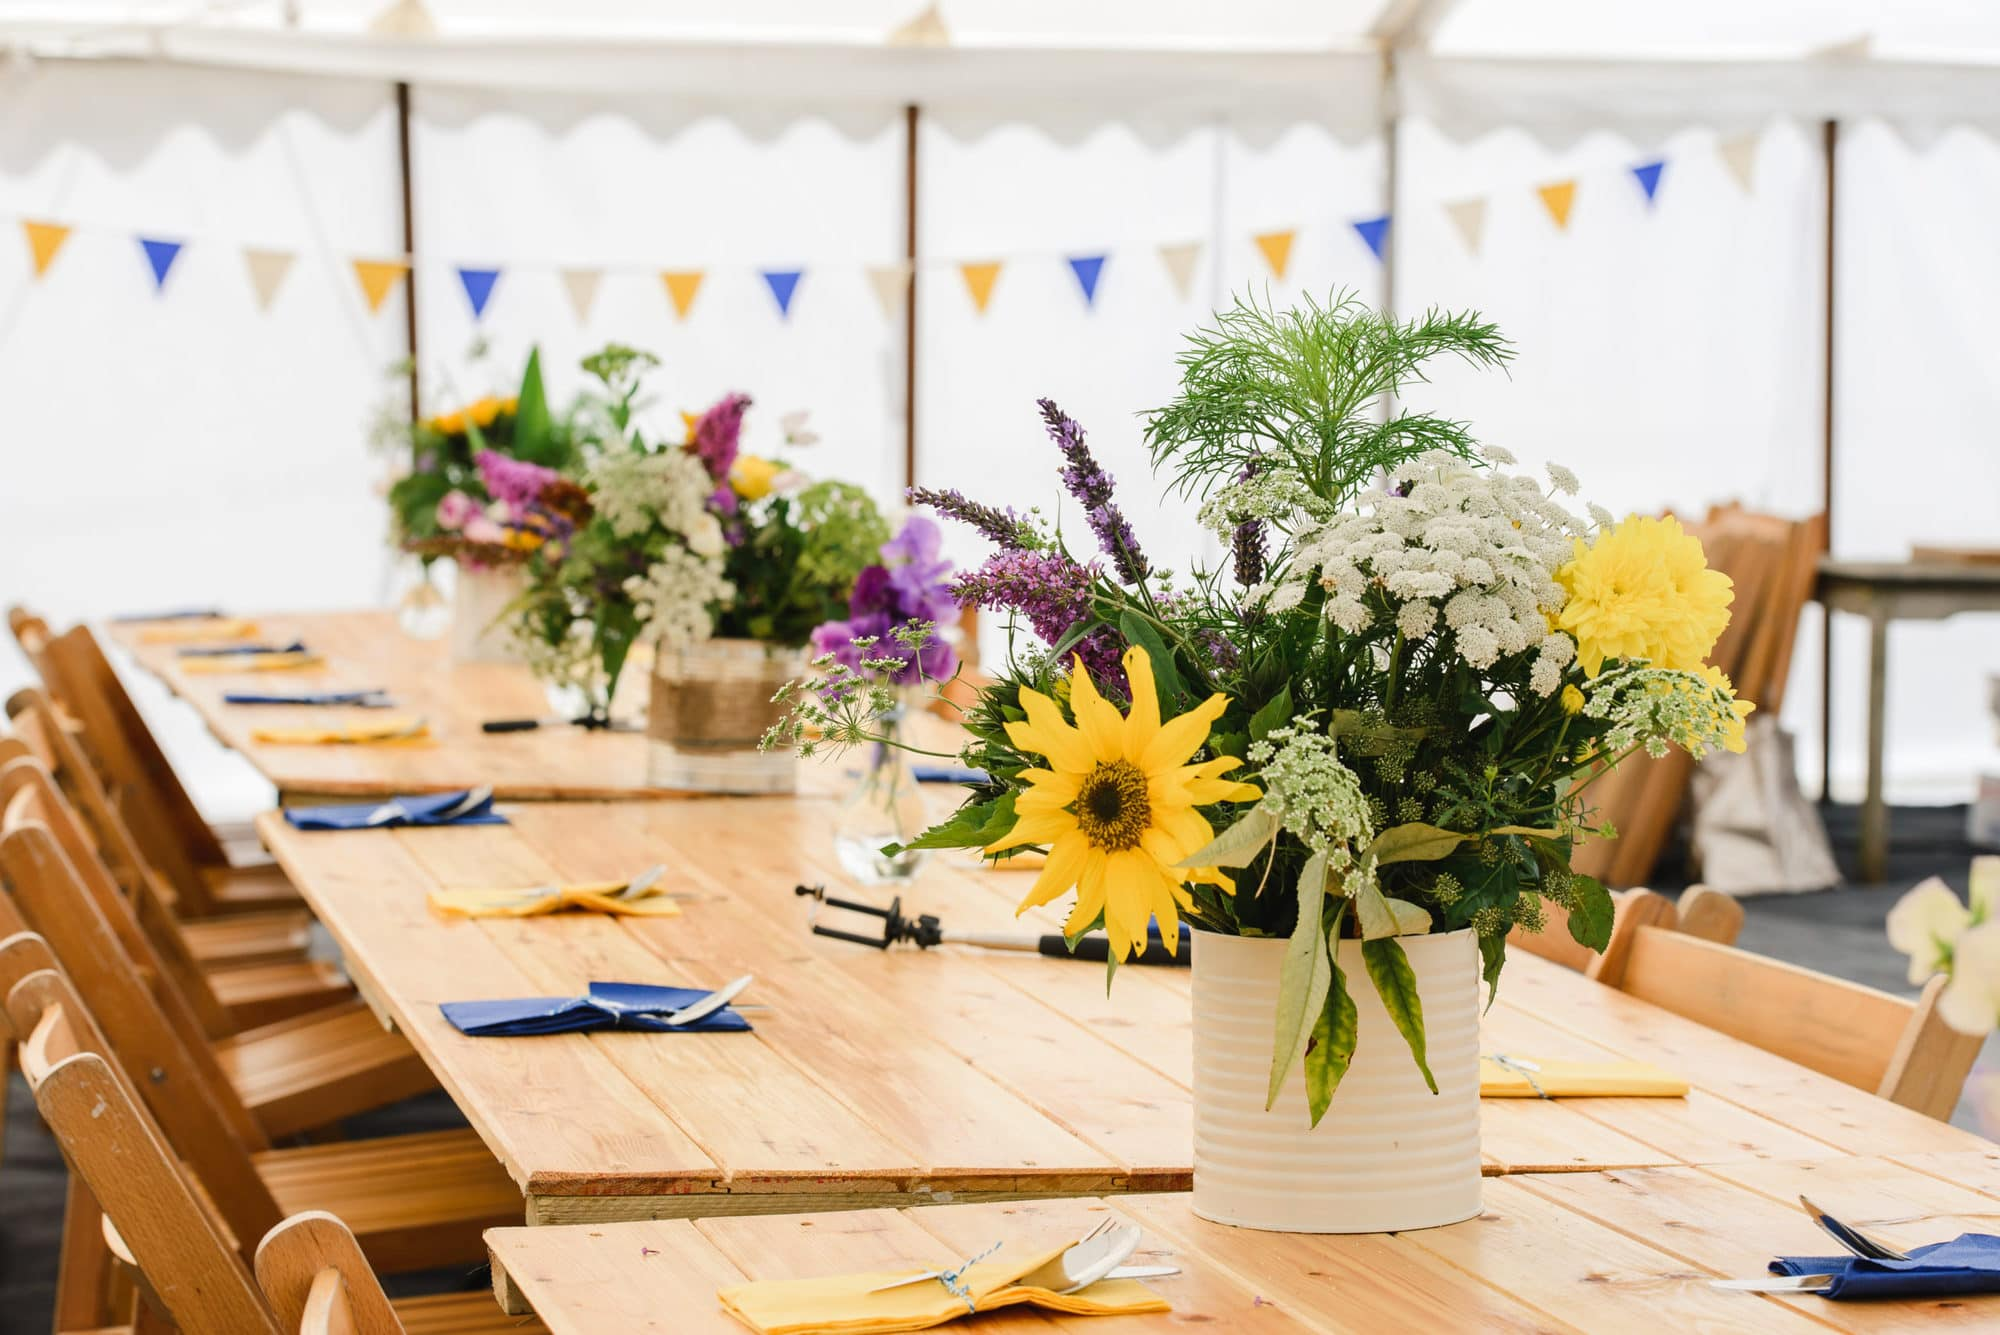 summer flowers on rustic wooden tables inside a marquee wedding